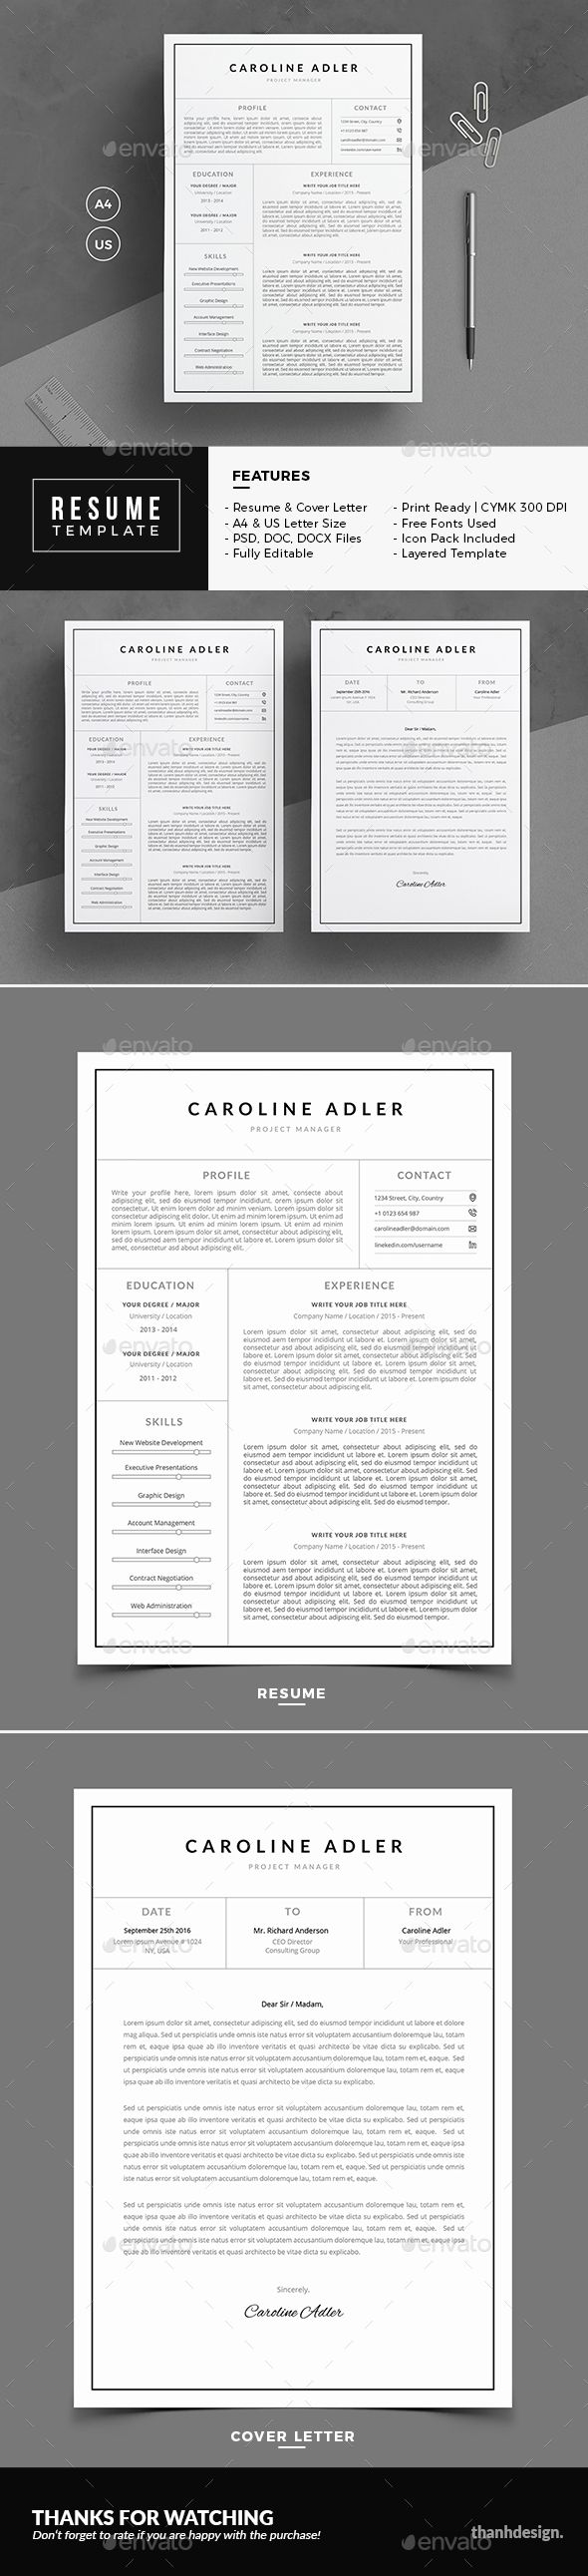 academic cover letter sample%0A Resume